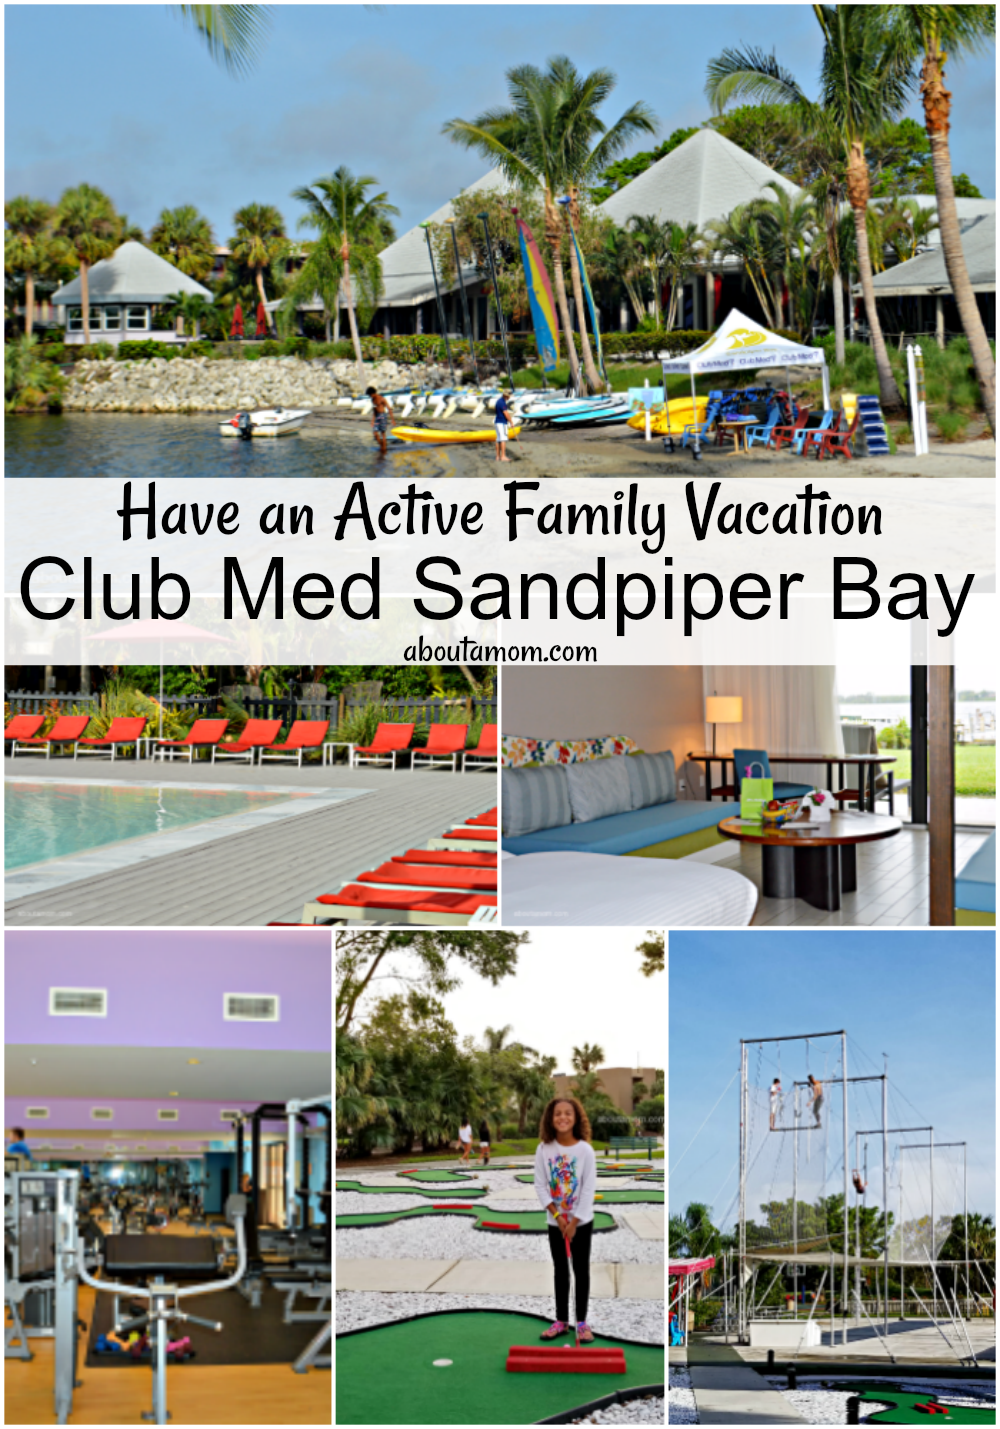 Club med sandpiper bay resort in florida about a mom for Mediterranean all inclusive resorts